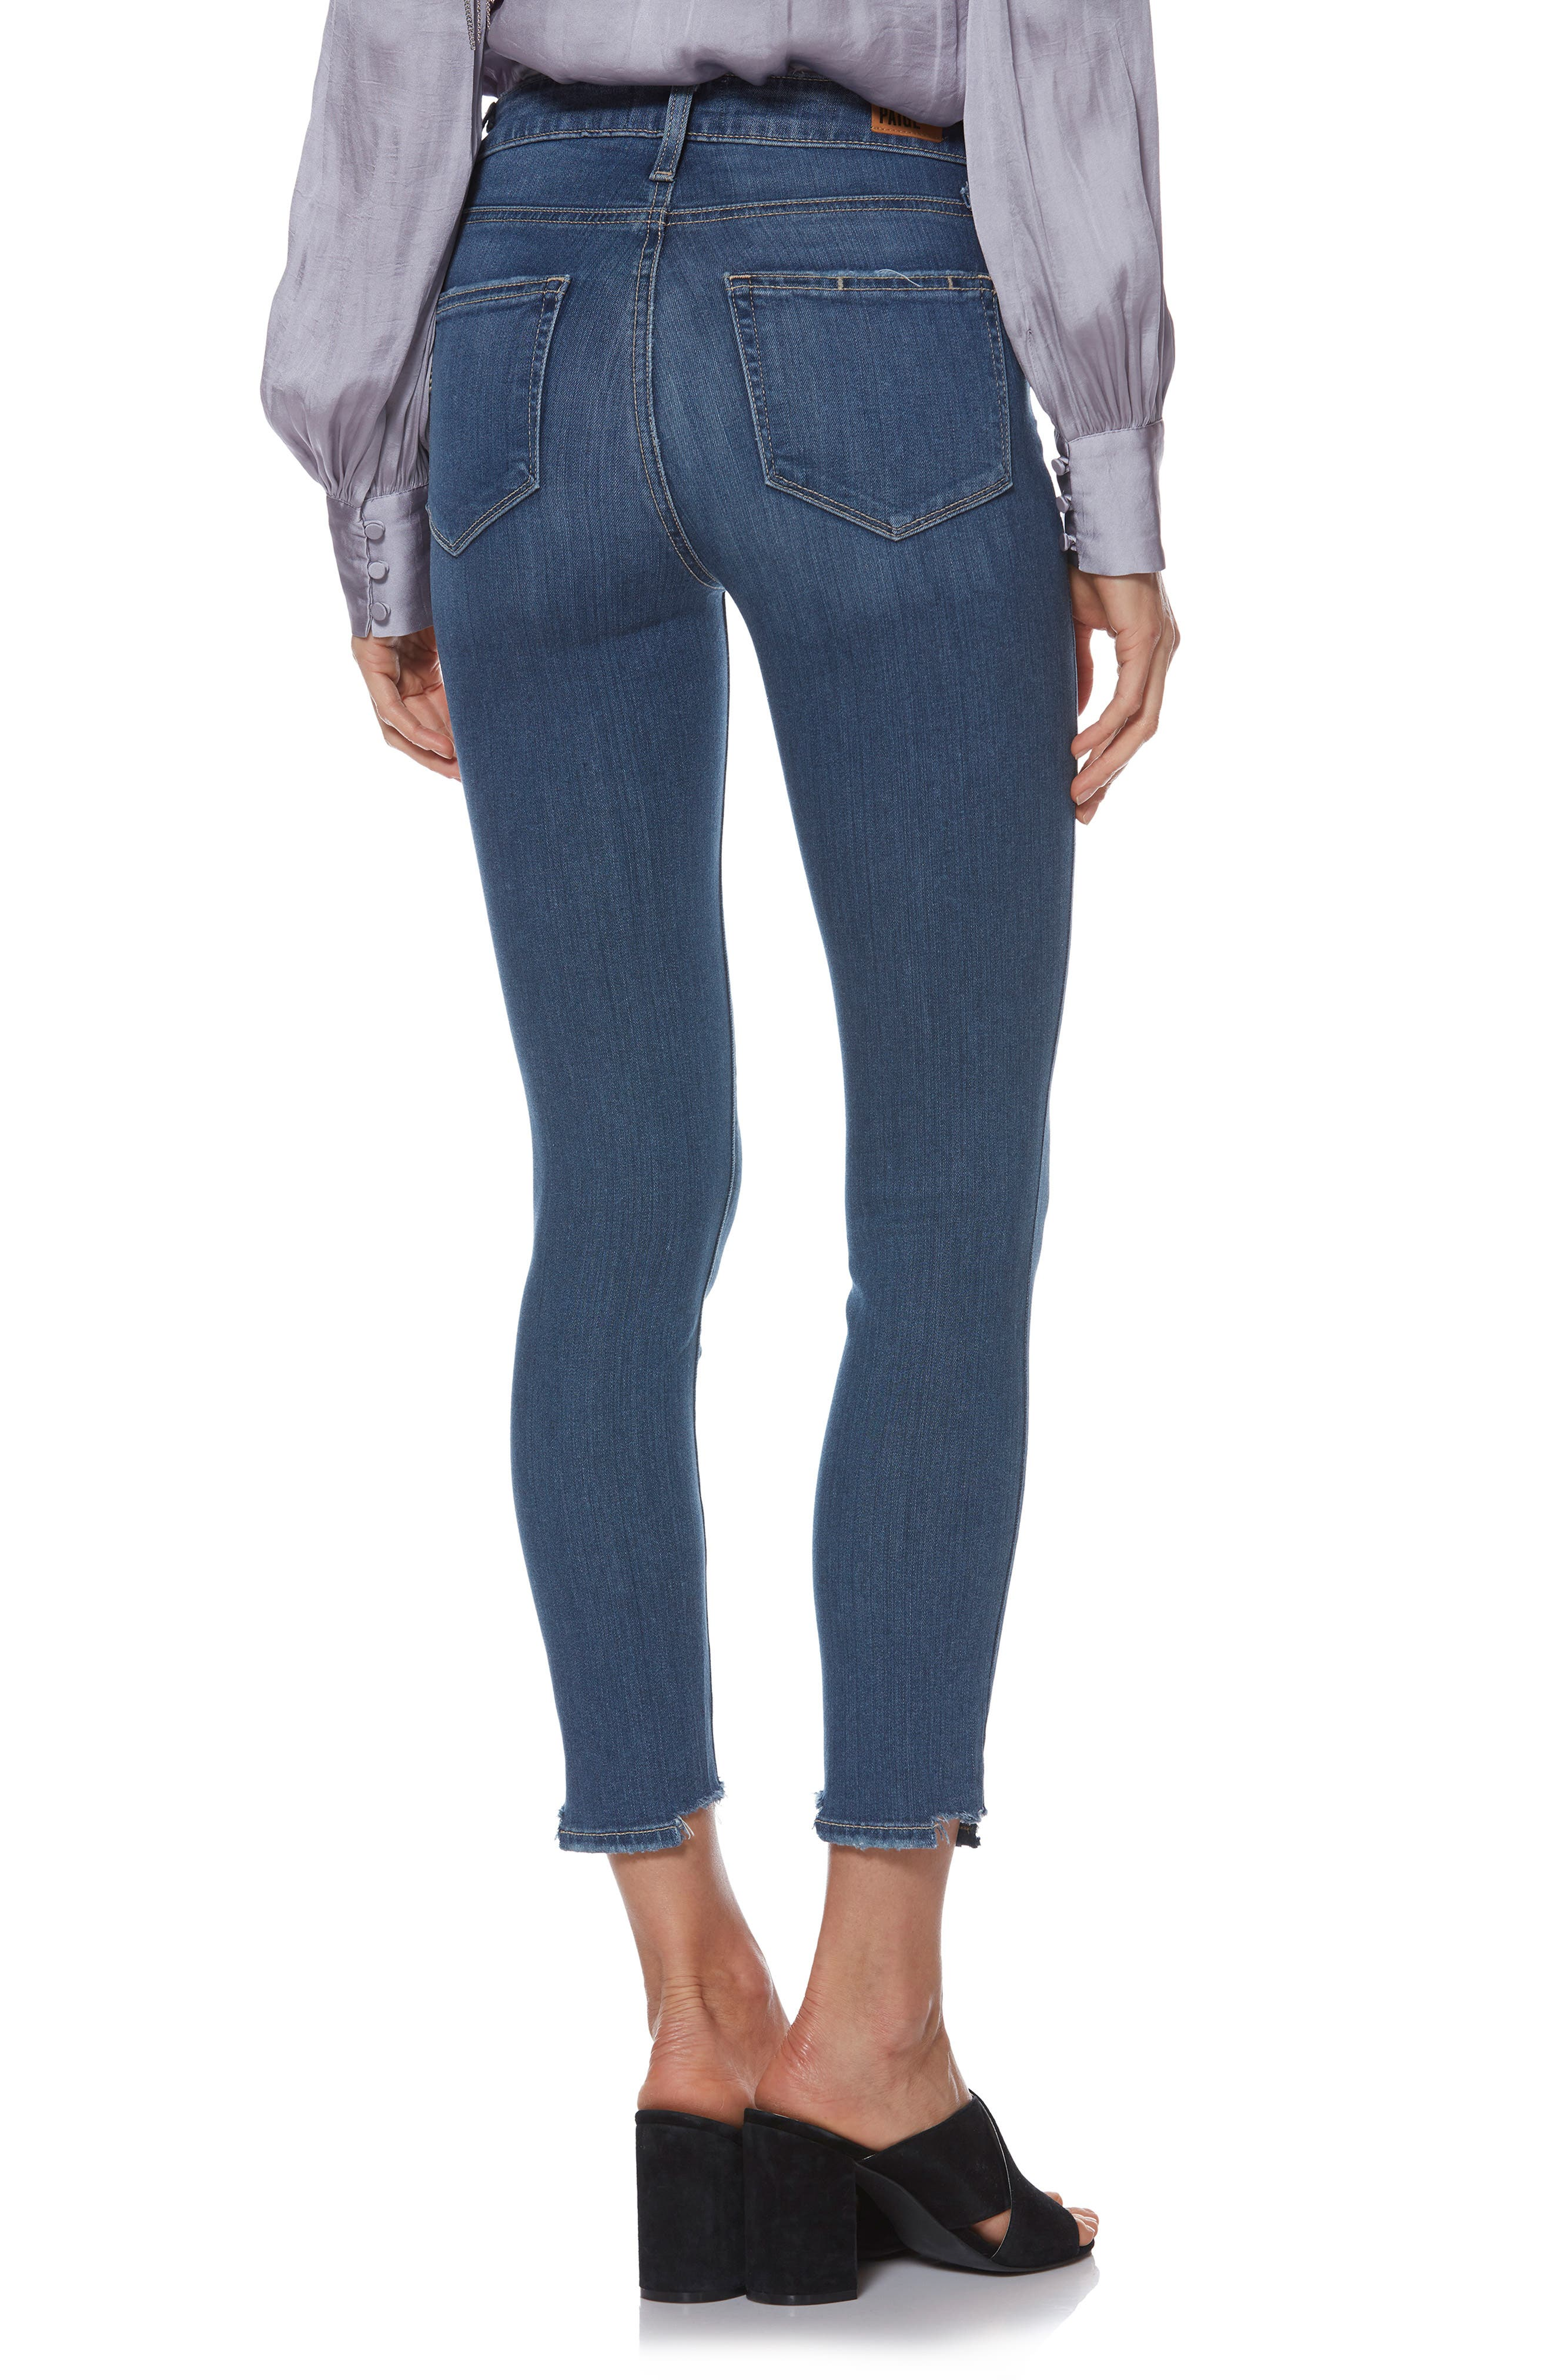 Transcend - Hoxton High Waist Crop Skinny Jeans,                             Alternate thumbnail 2, color,                             400